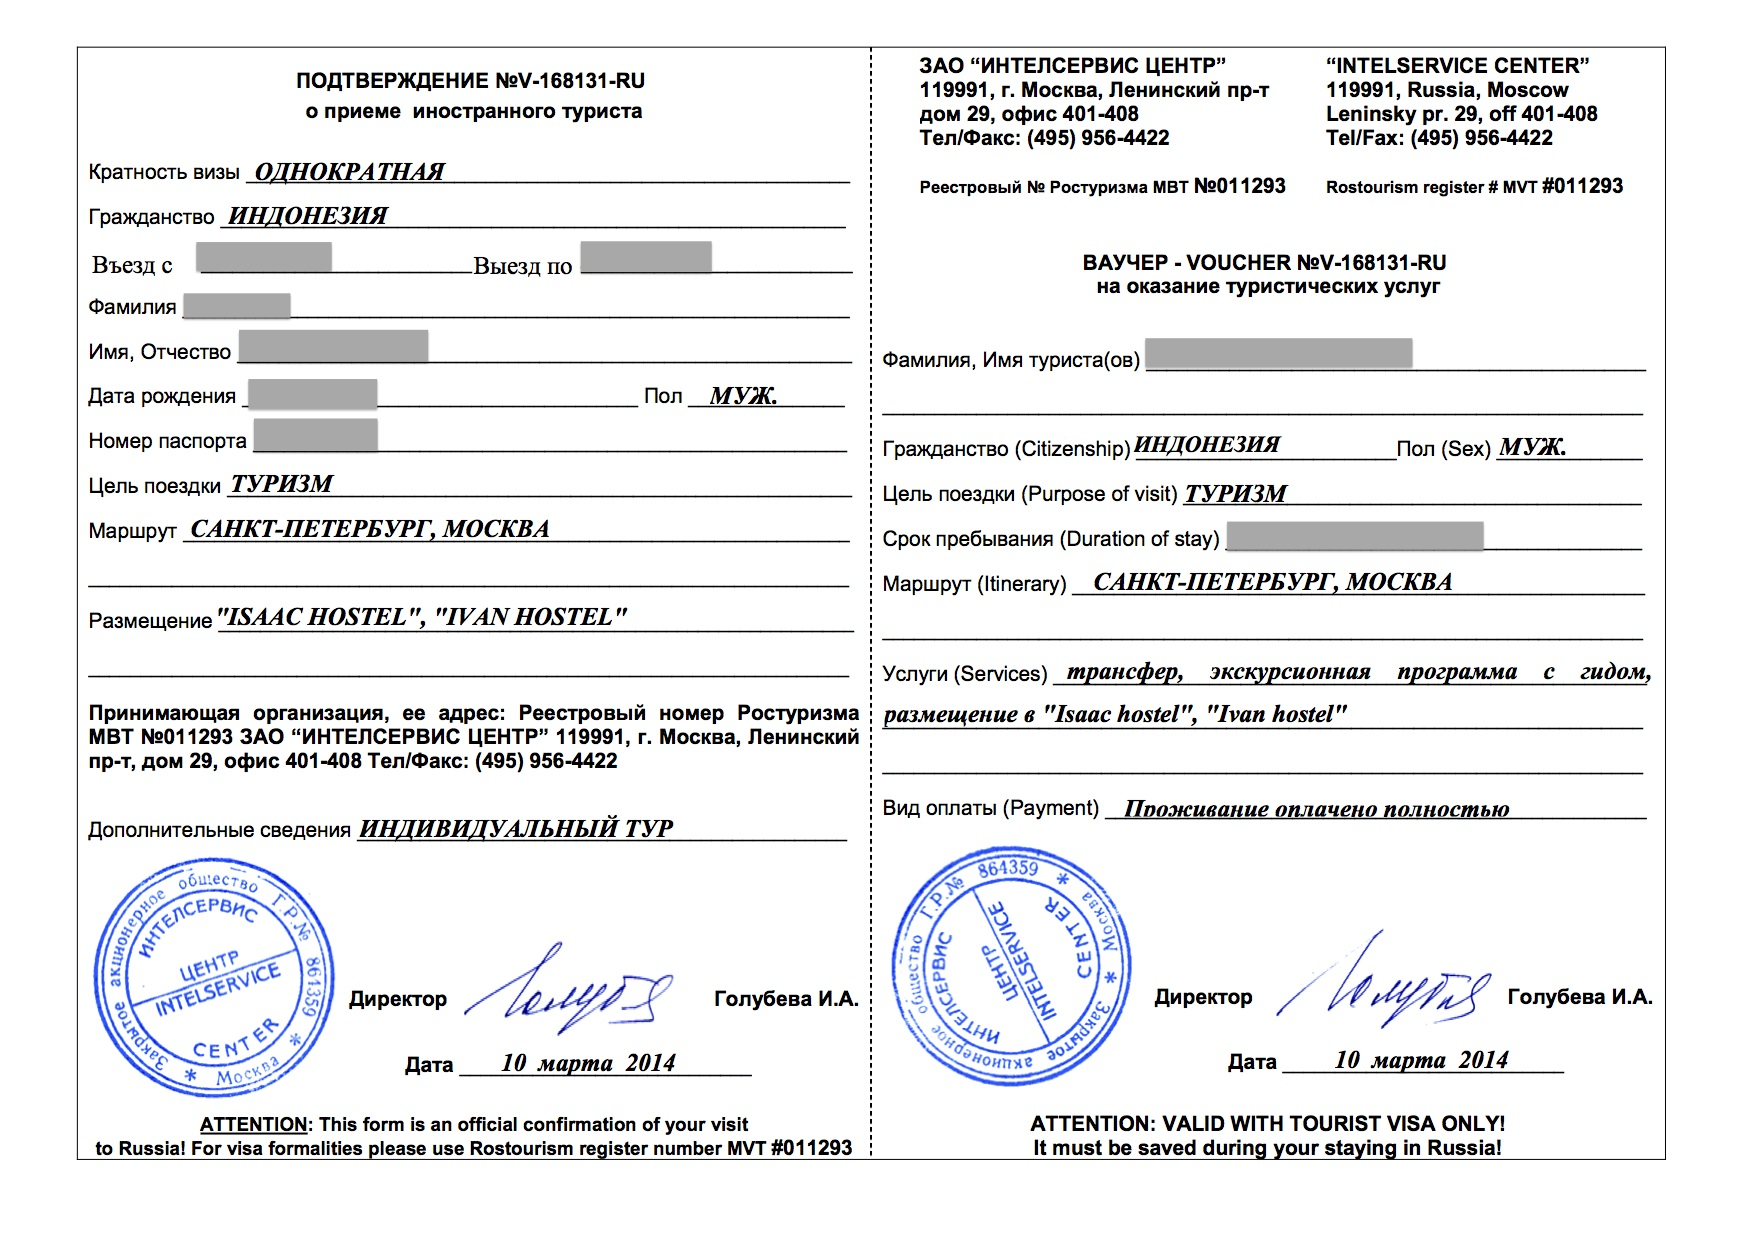 application for transfer or confirmation of a visa